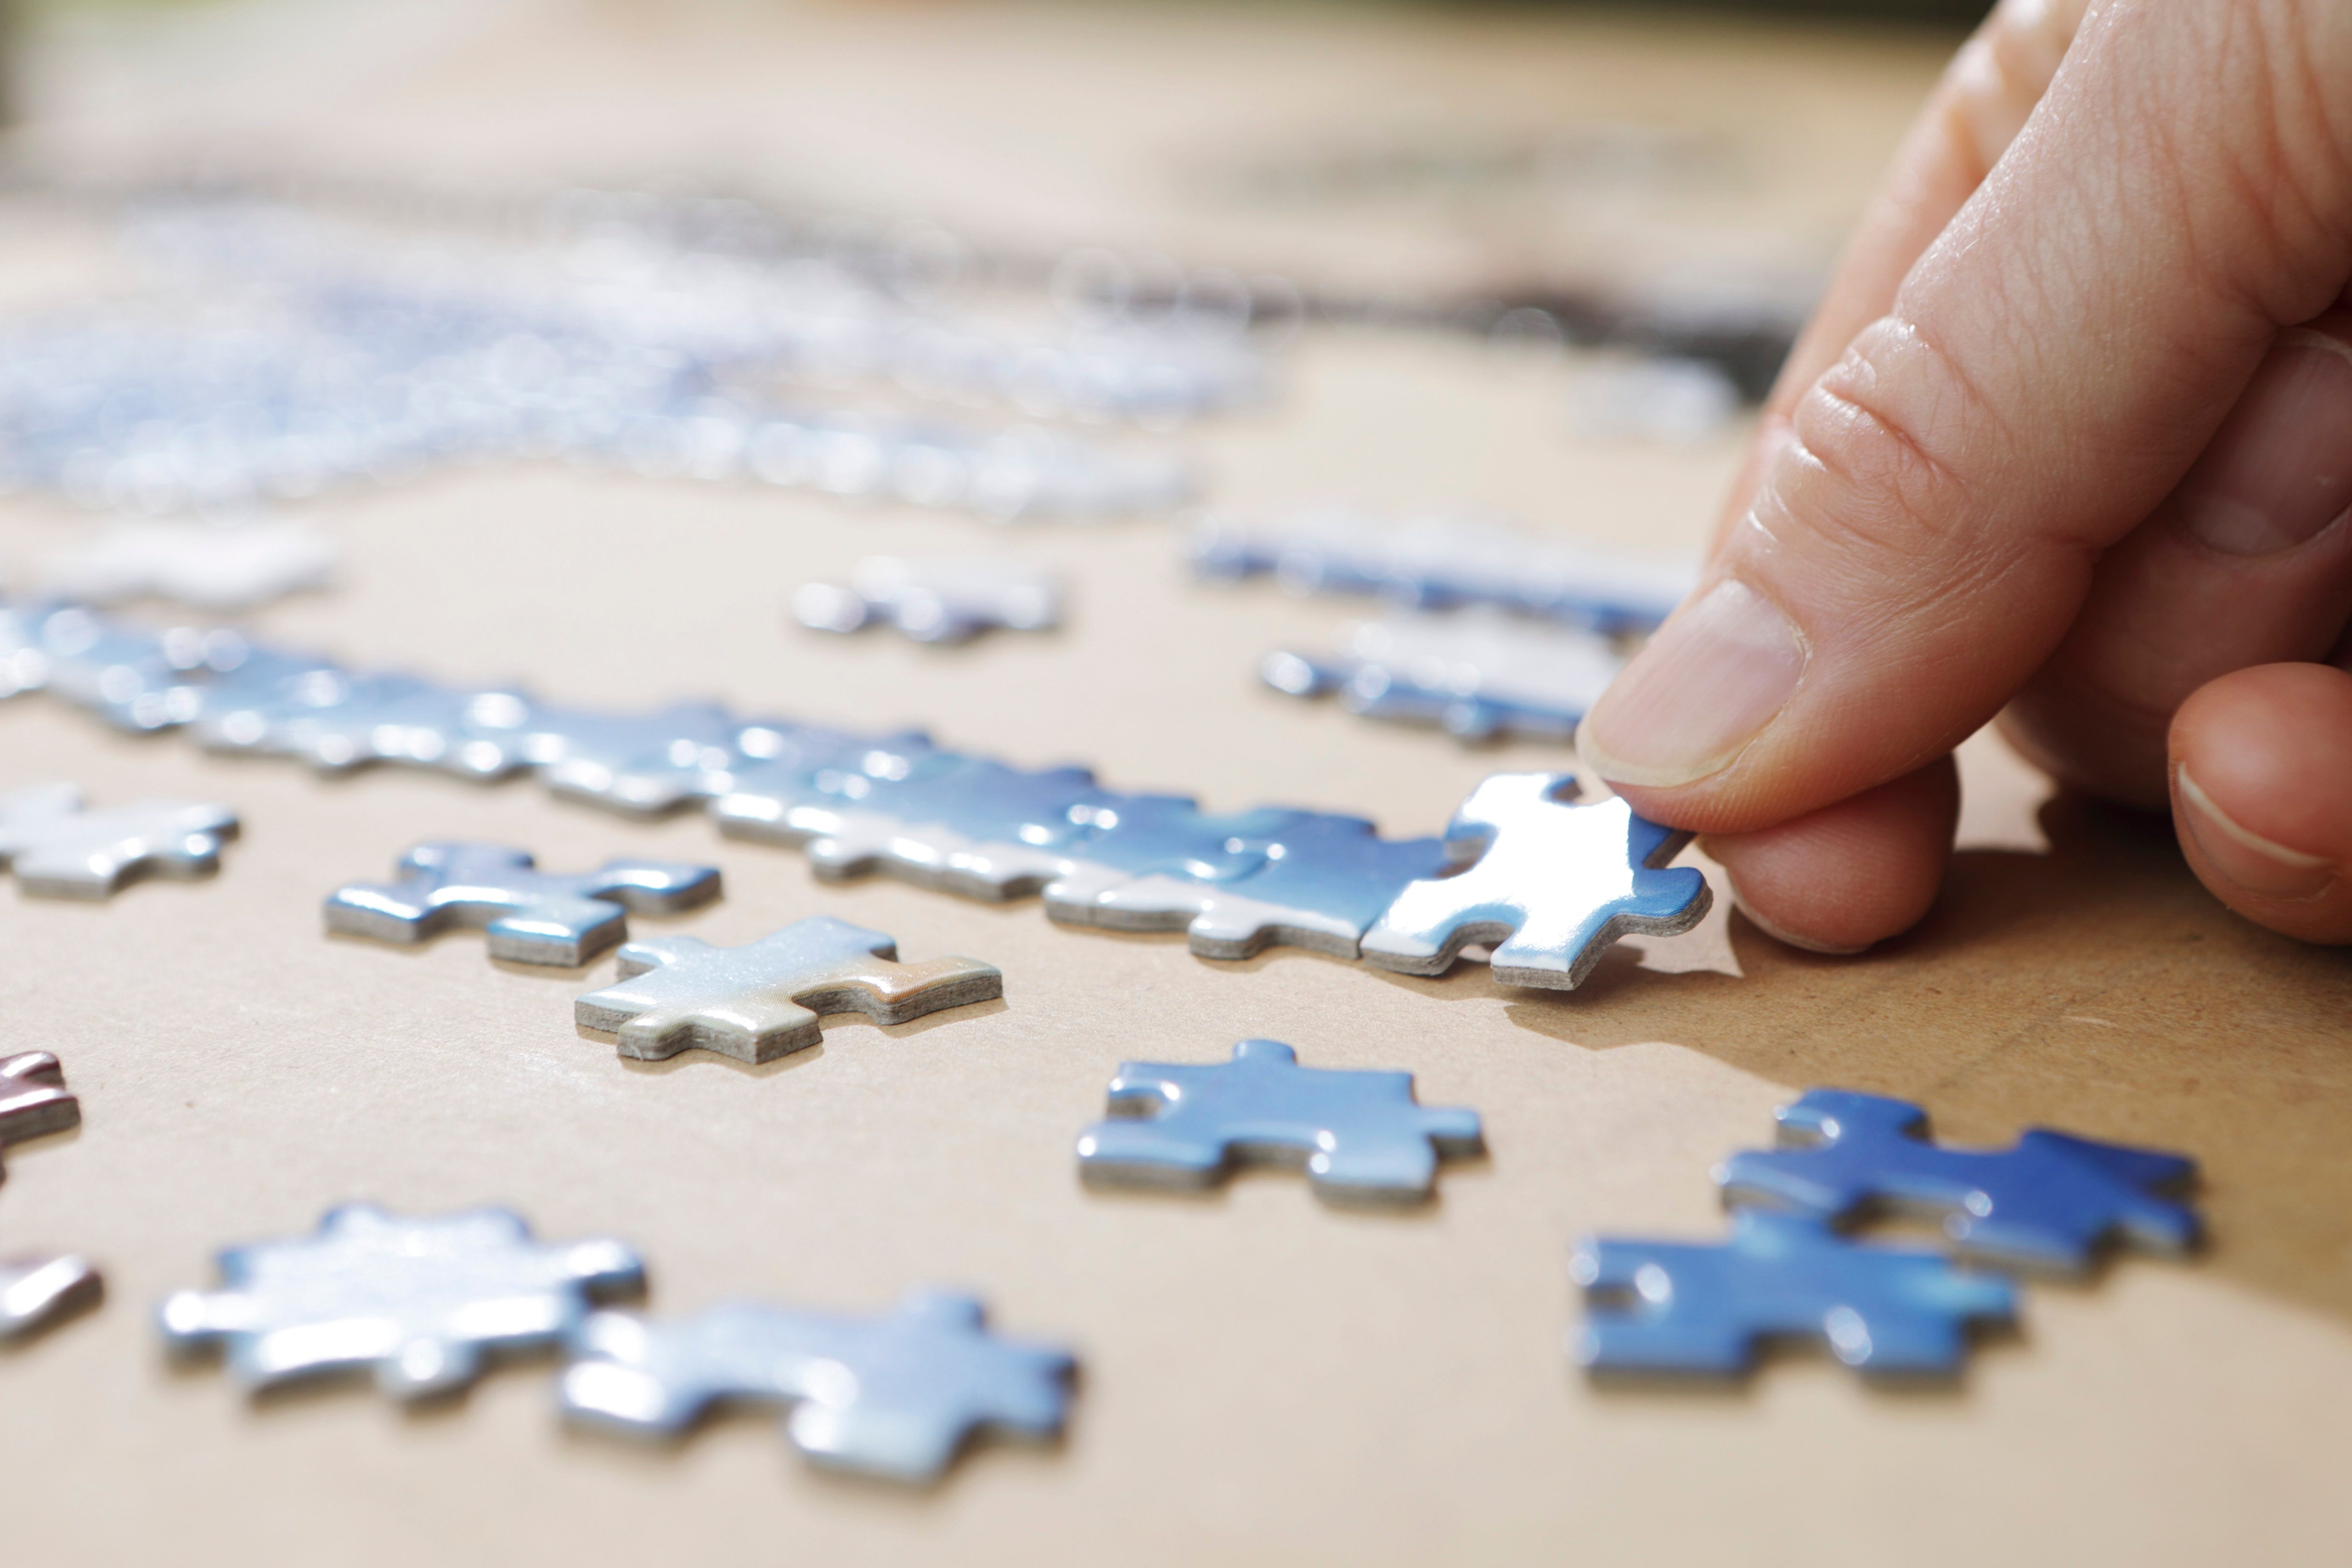 Hand placing puzzle pieces on a board